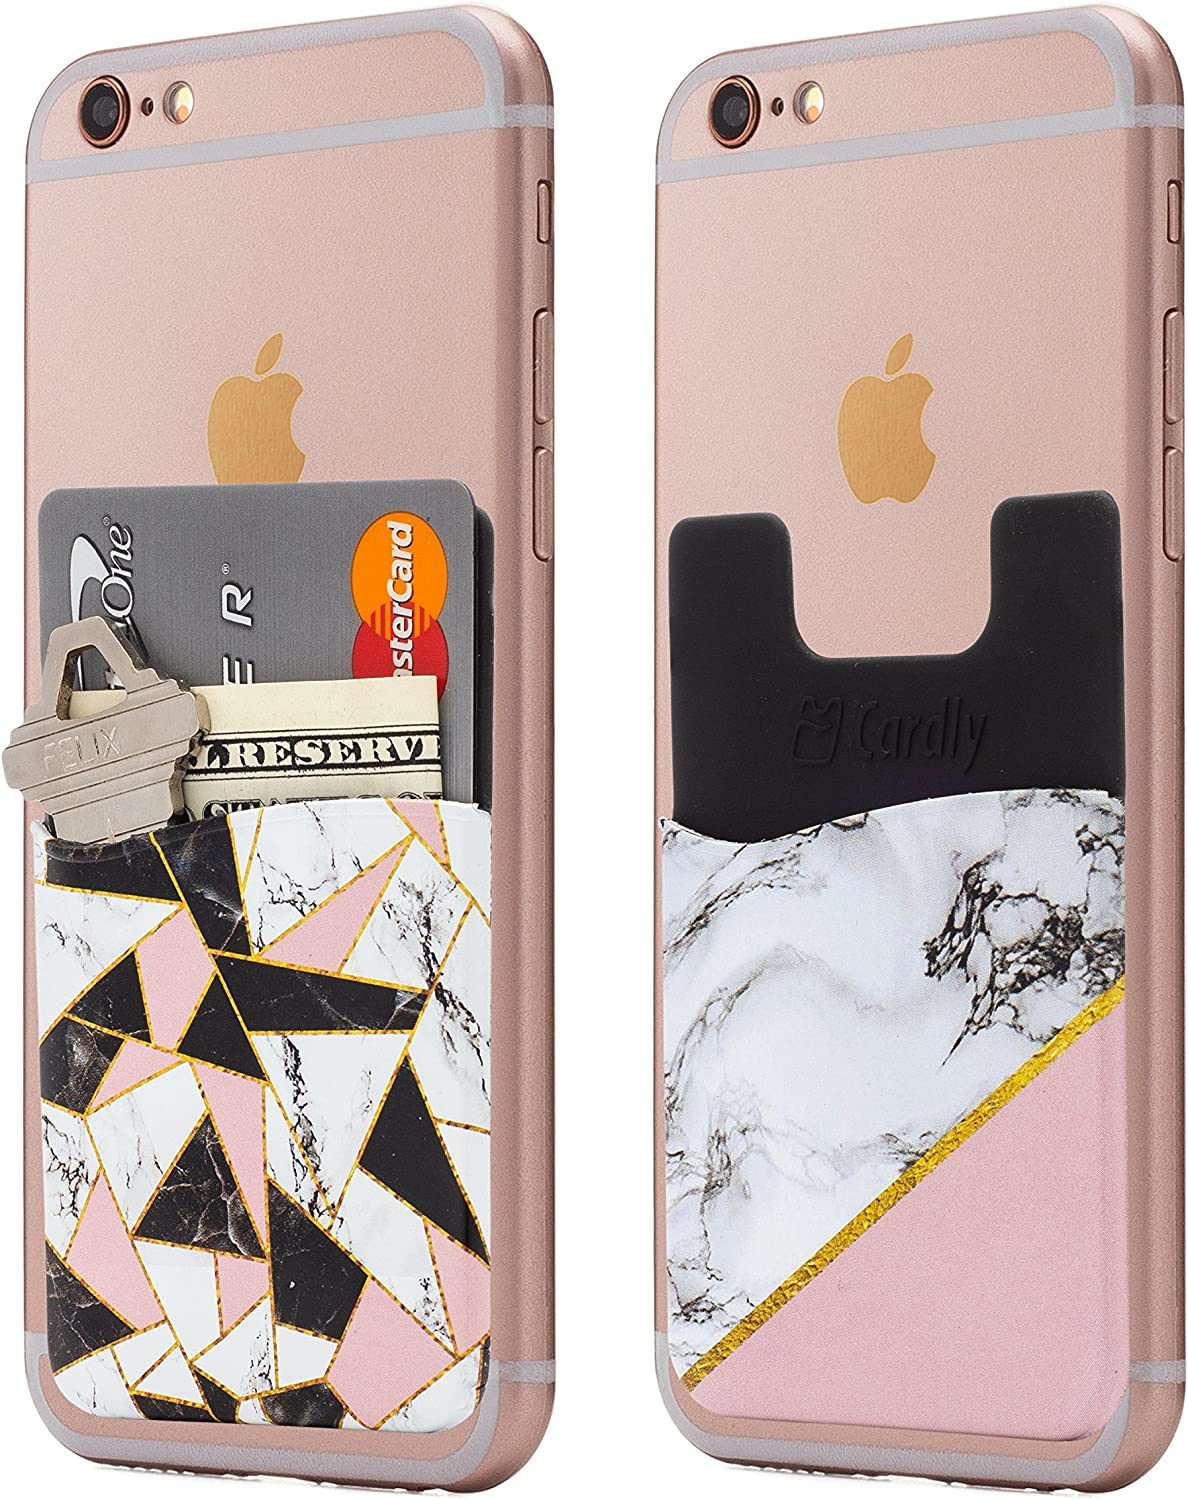 (Two) Marble Cell Phone Stick on Wallet Card Holder Phone Pocket for iPhone, Android and All Smartphones (Shattered)